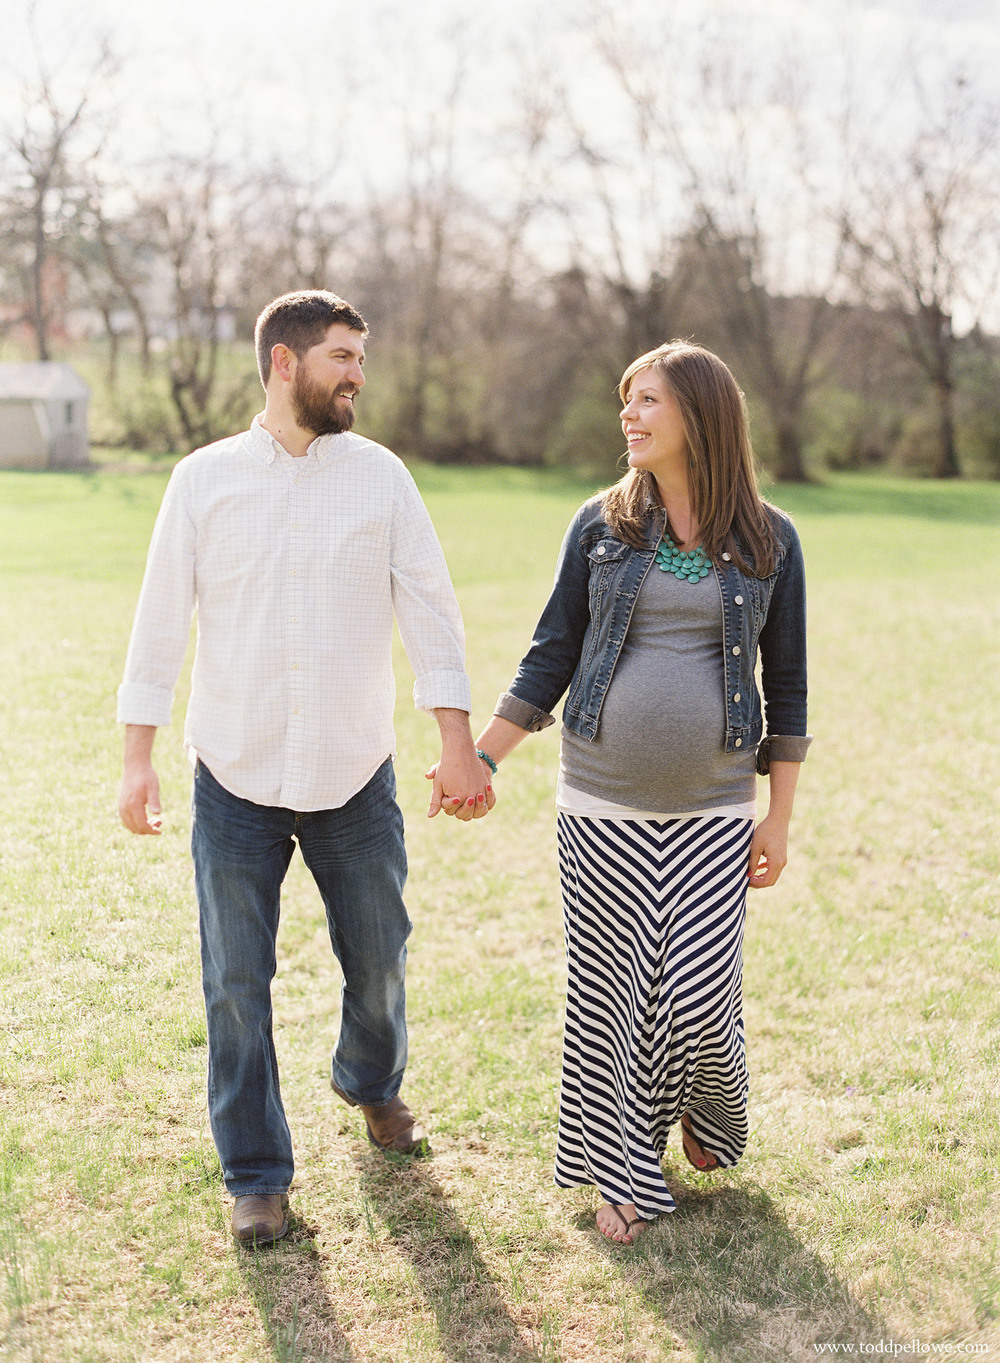 09-louisville_maternity_photographer-016.jpg